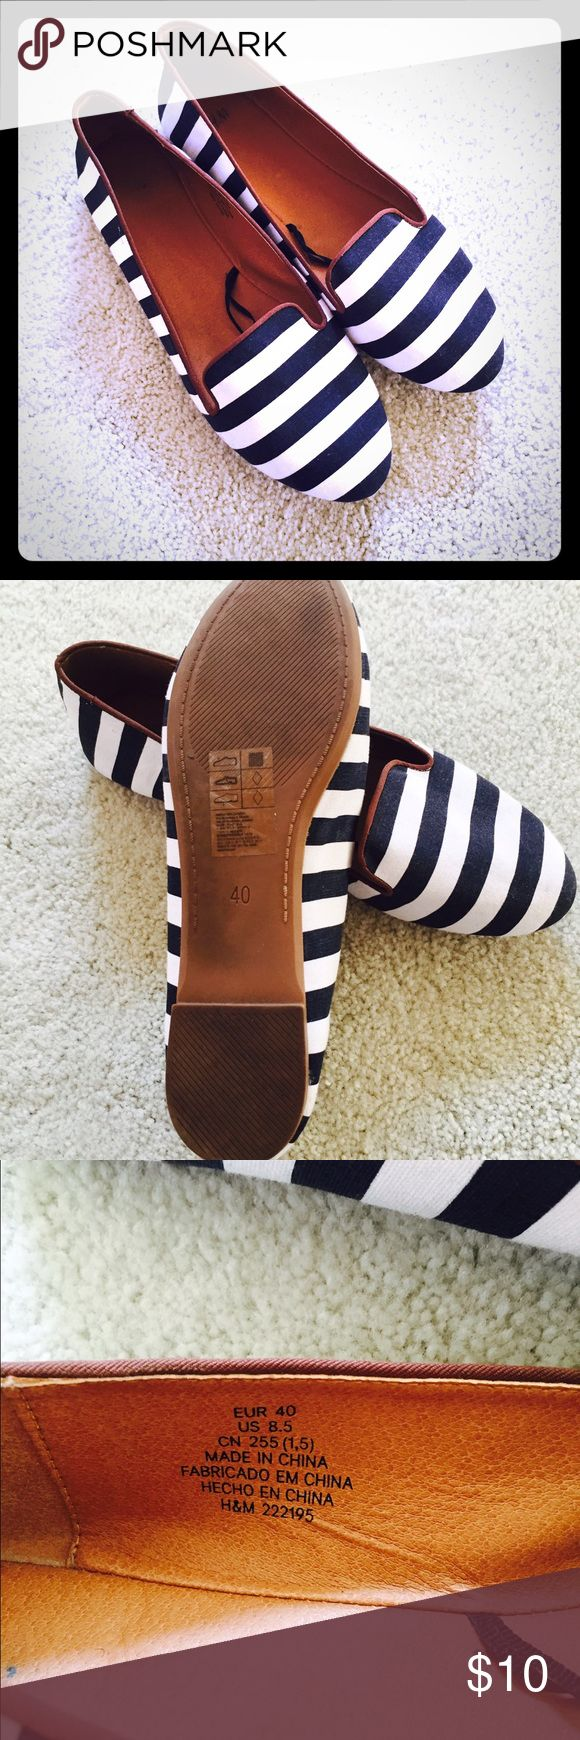 H&M Navy Blue and White flats These are so comfy and stylish. Pairs great with jeans! H&M Shoes Flats & Loafers